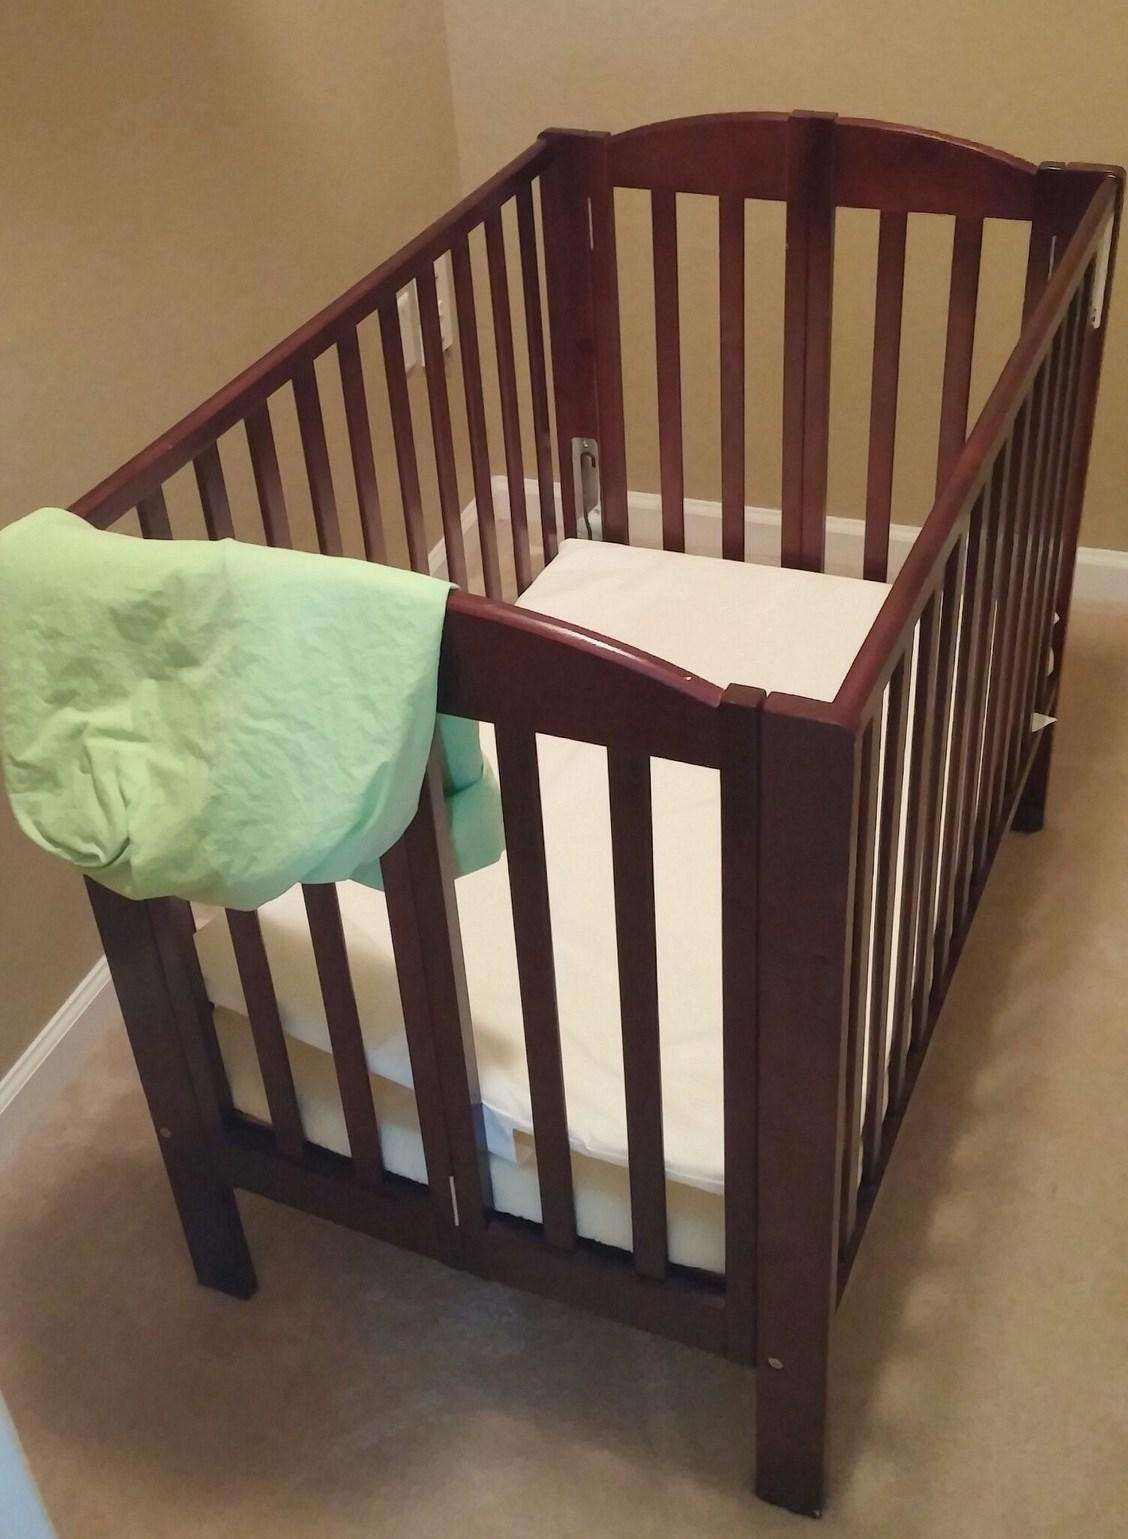 Crib at unit for your little one to have a comfortable sleep